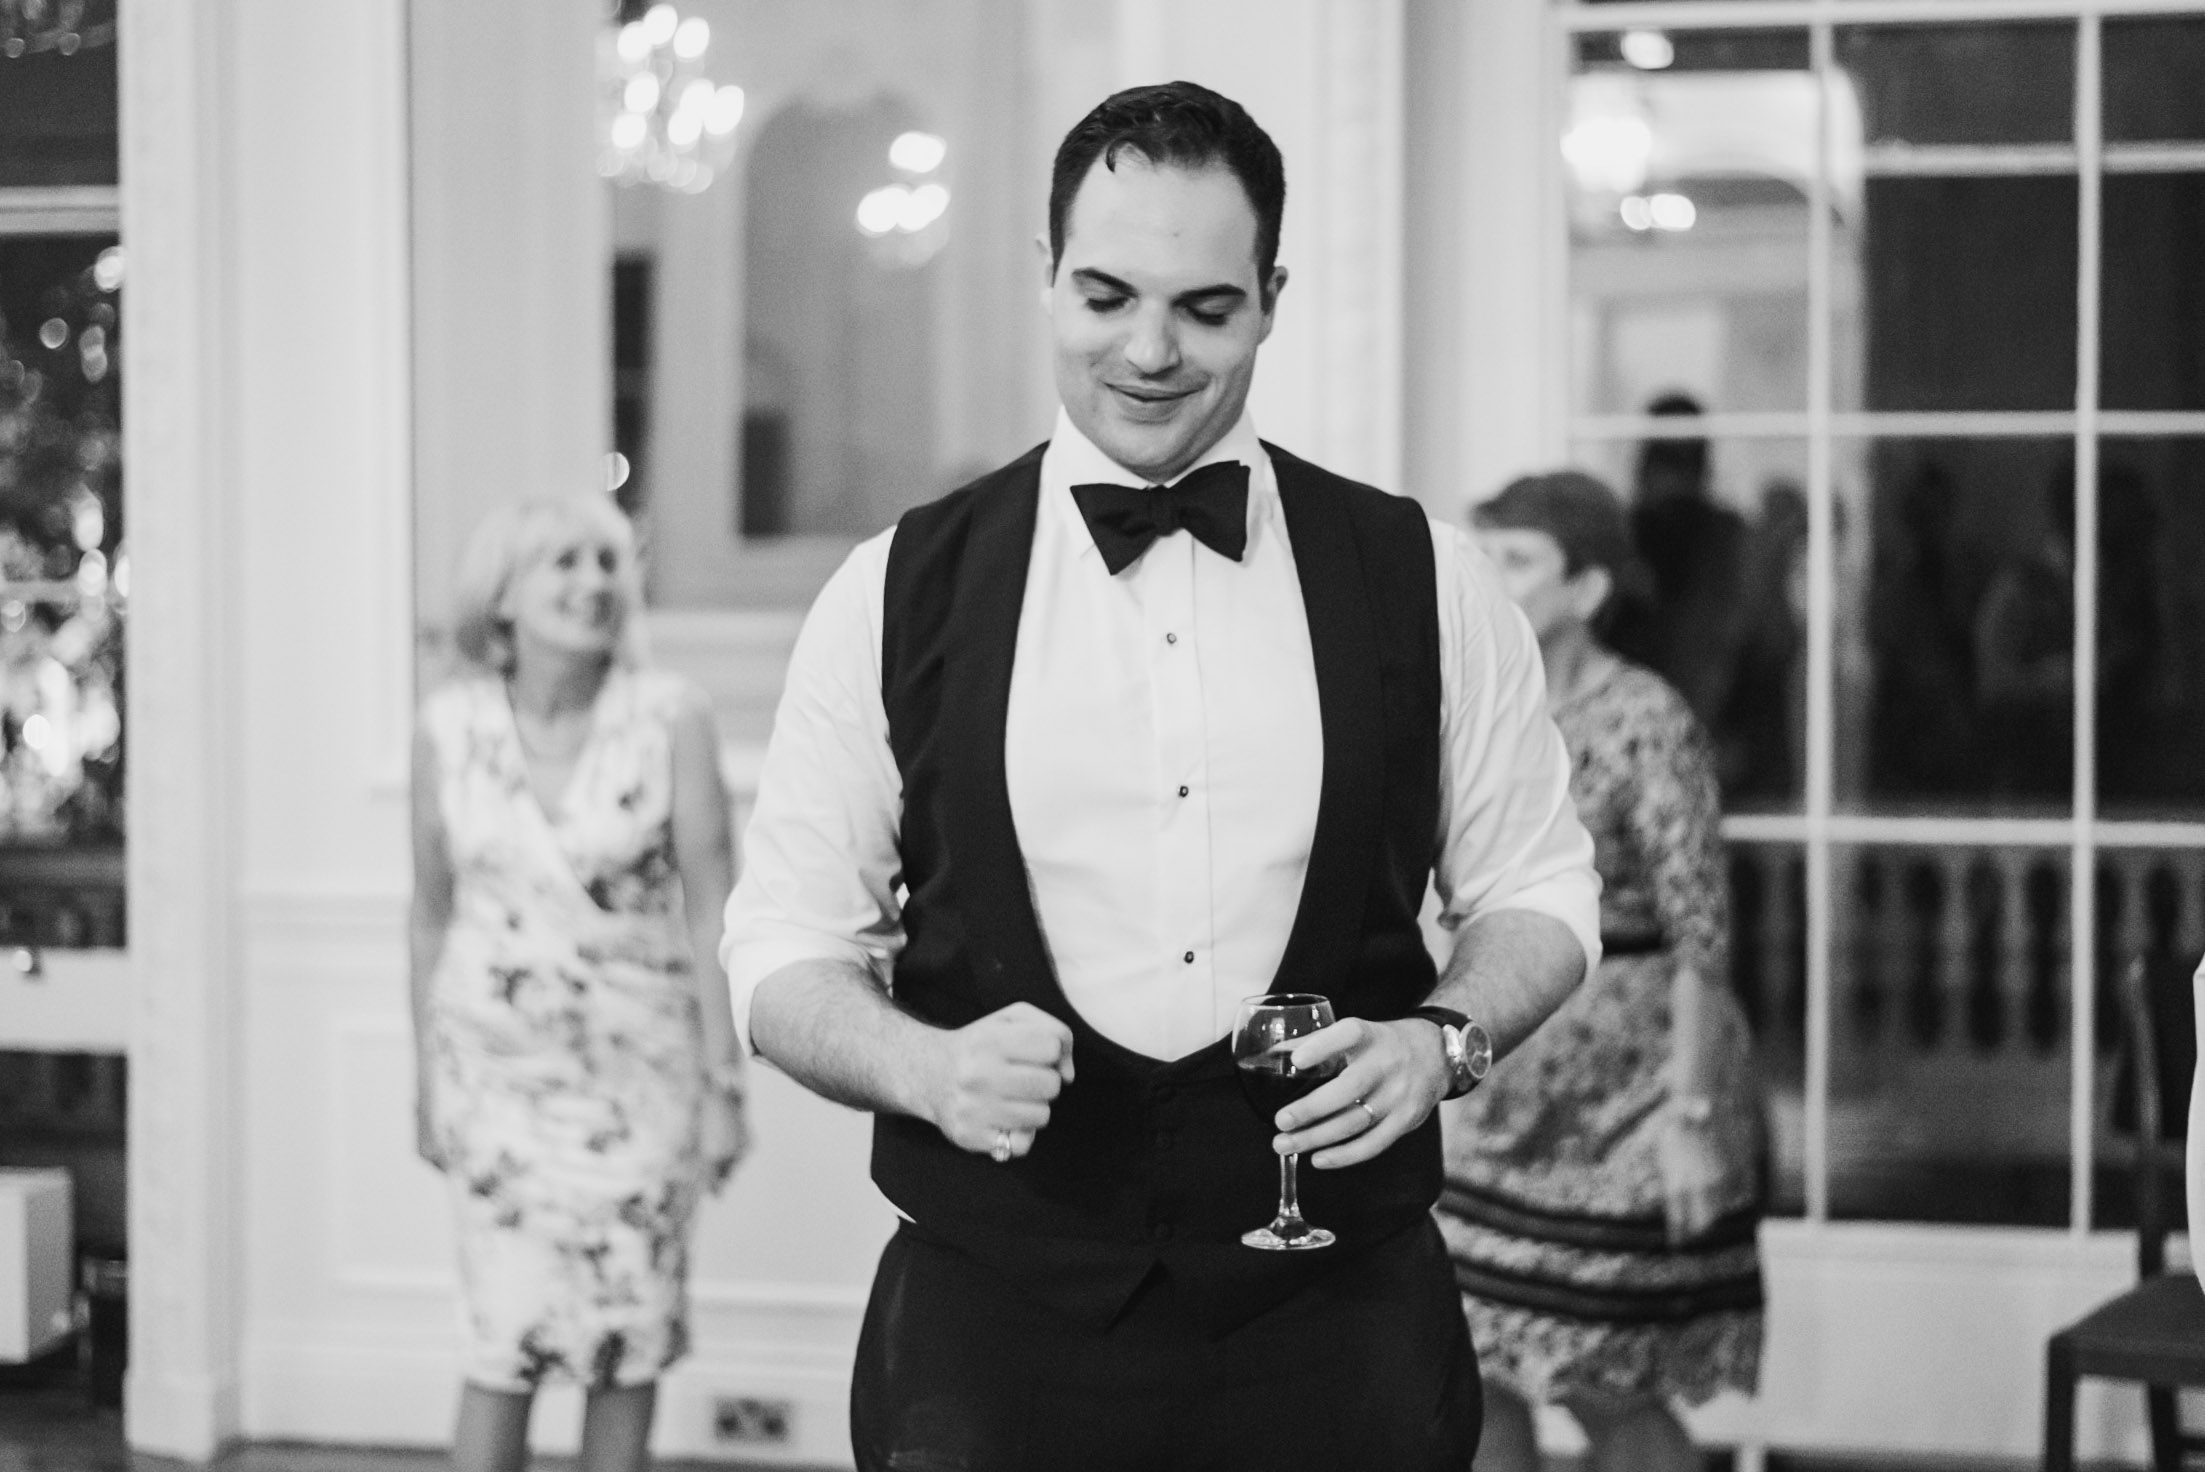 carine bea photography, groom at wedding Carlton House Terrace London